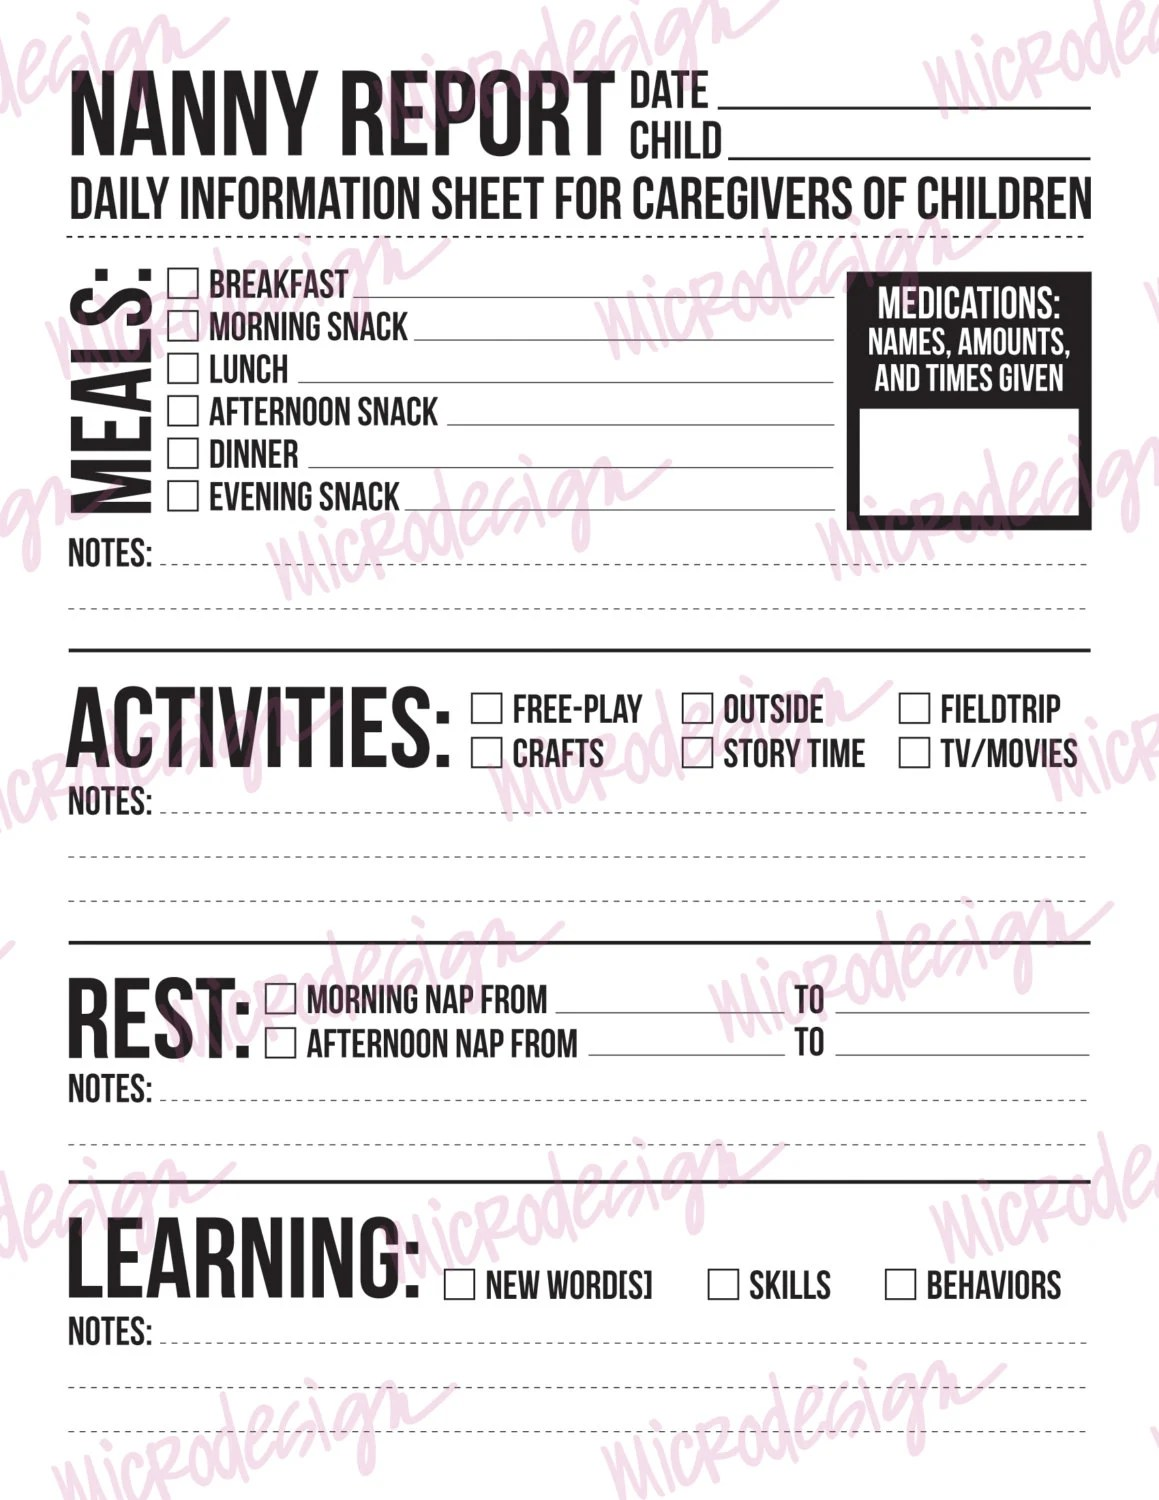 Nanny Report Daily Information Sheet For By Microdesign